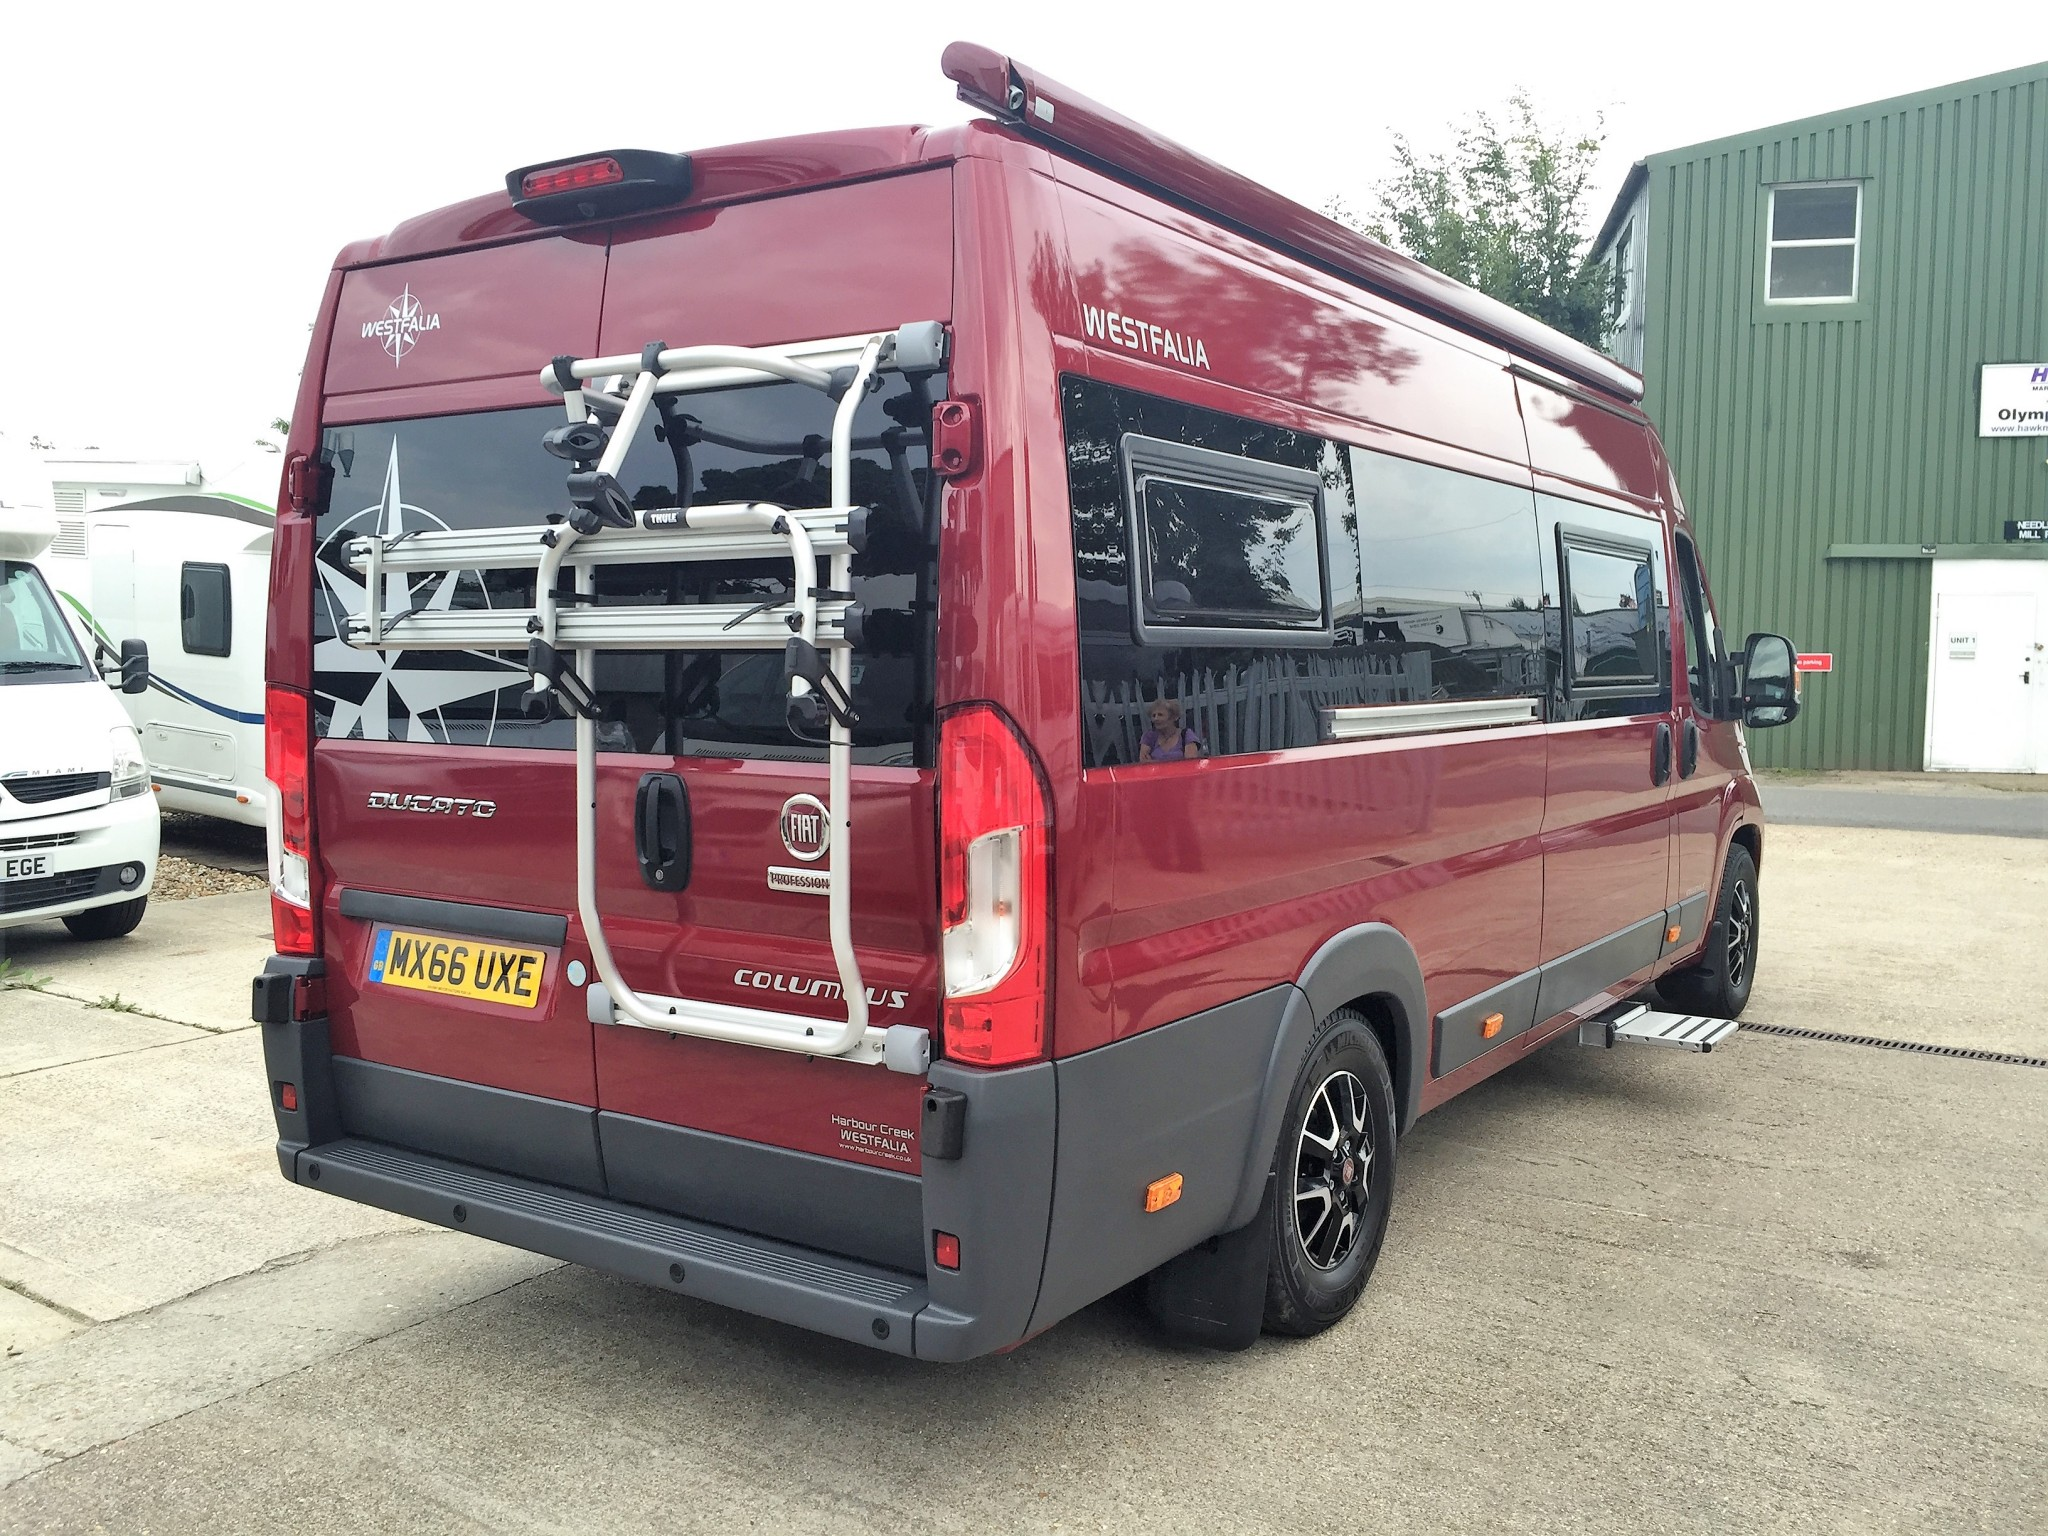 westfalia fiat ducato cycle bike rack 2 bikes harbour creek motorhomes your south coast. Black Bedroom Furniture Sets. Home Design Ideas